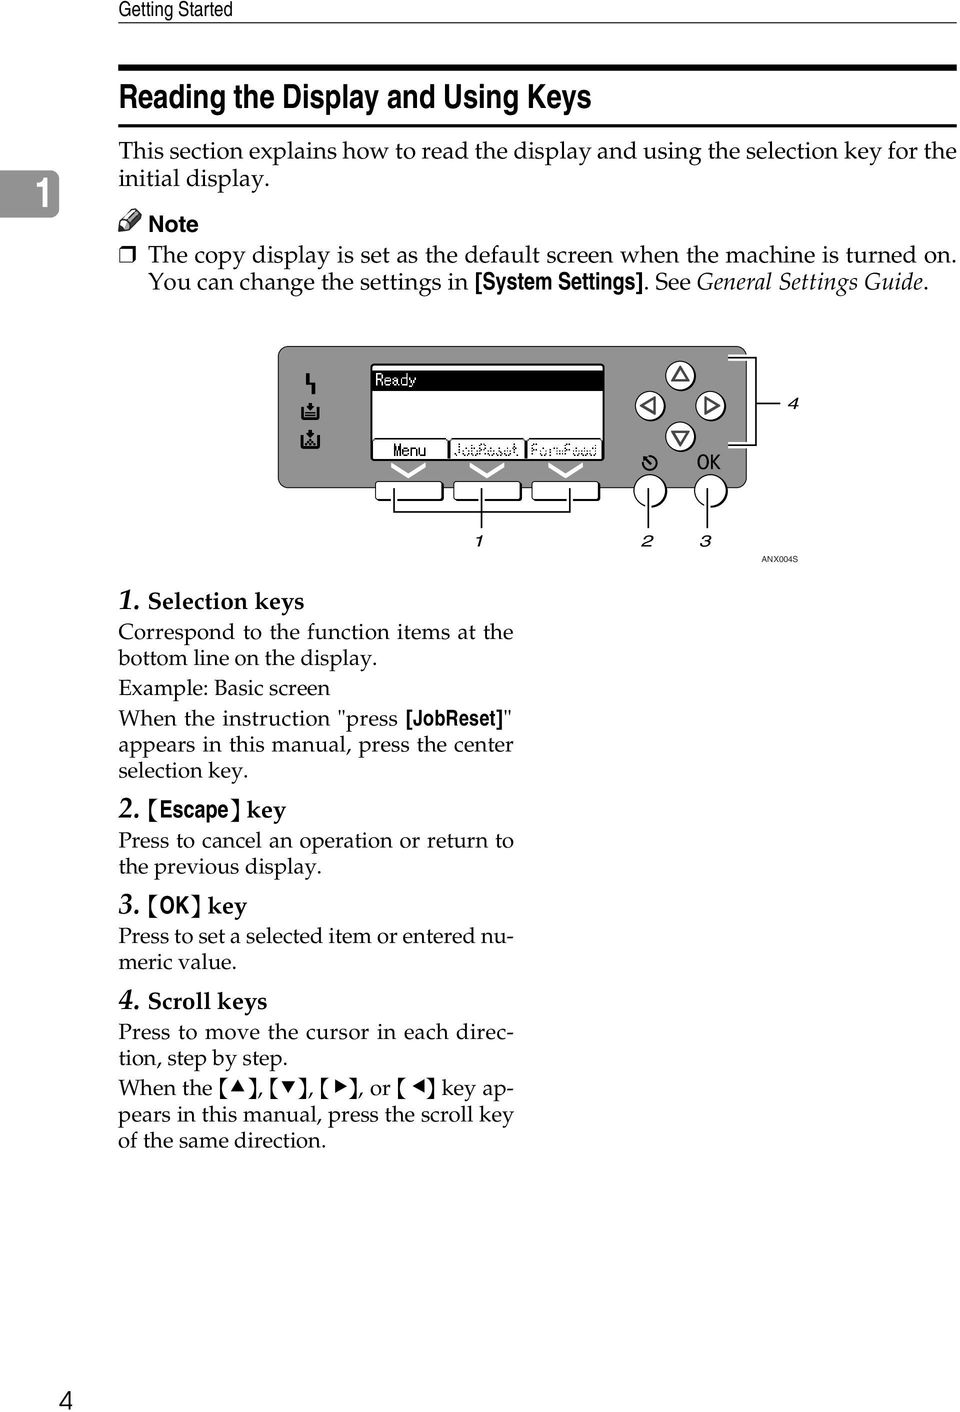 "Selection keys Correspond to the function items at the bottom line on the display. Example: Basic screen When the instruction ""press [JobReset]"" appears in this manual, press the center selection key."